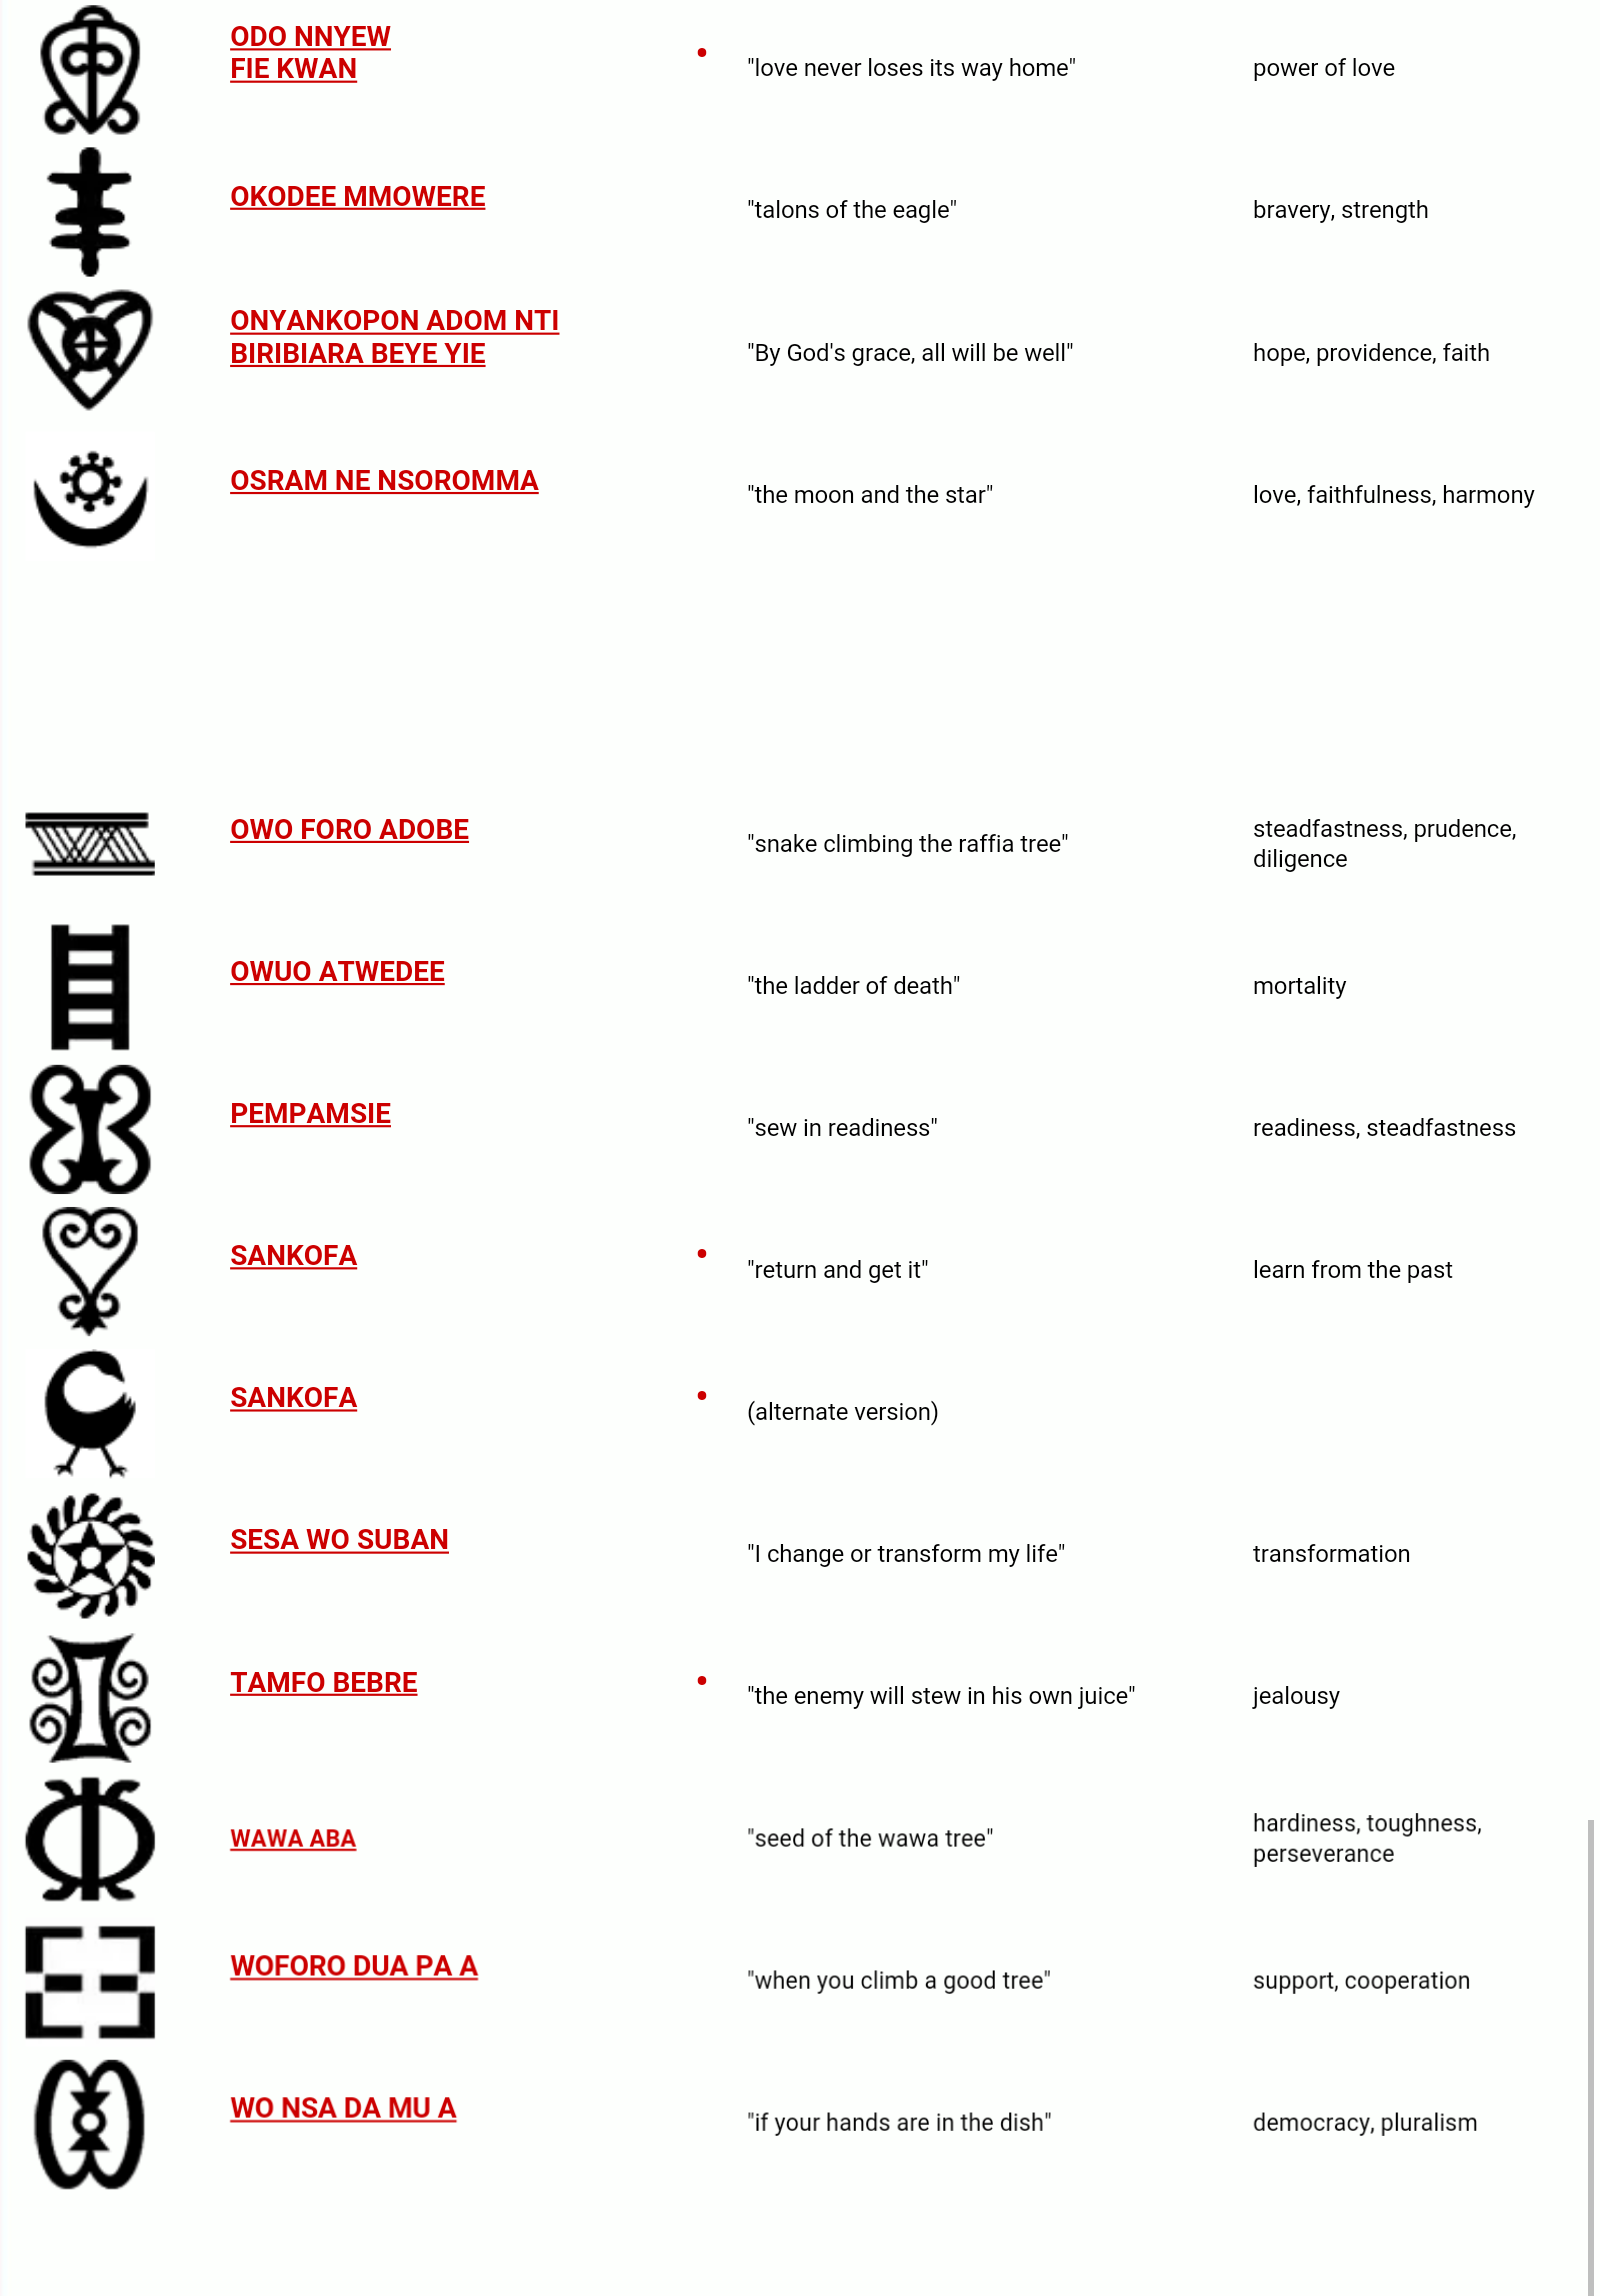 Meanings of the ghanaian adinkra symbols on the cloths screenshot2015 12 03 08 36 50 1 the adinkra symbols buycottarizona